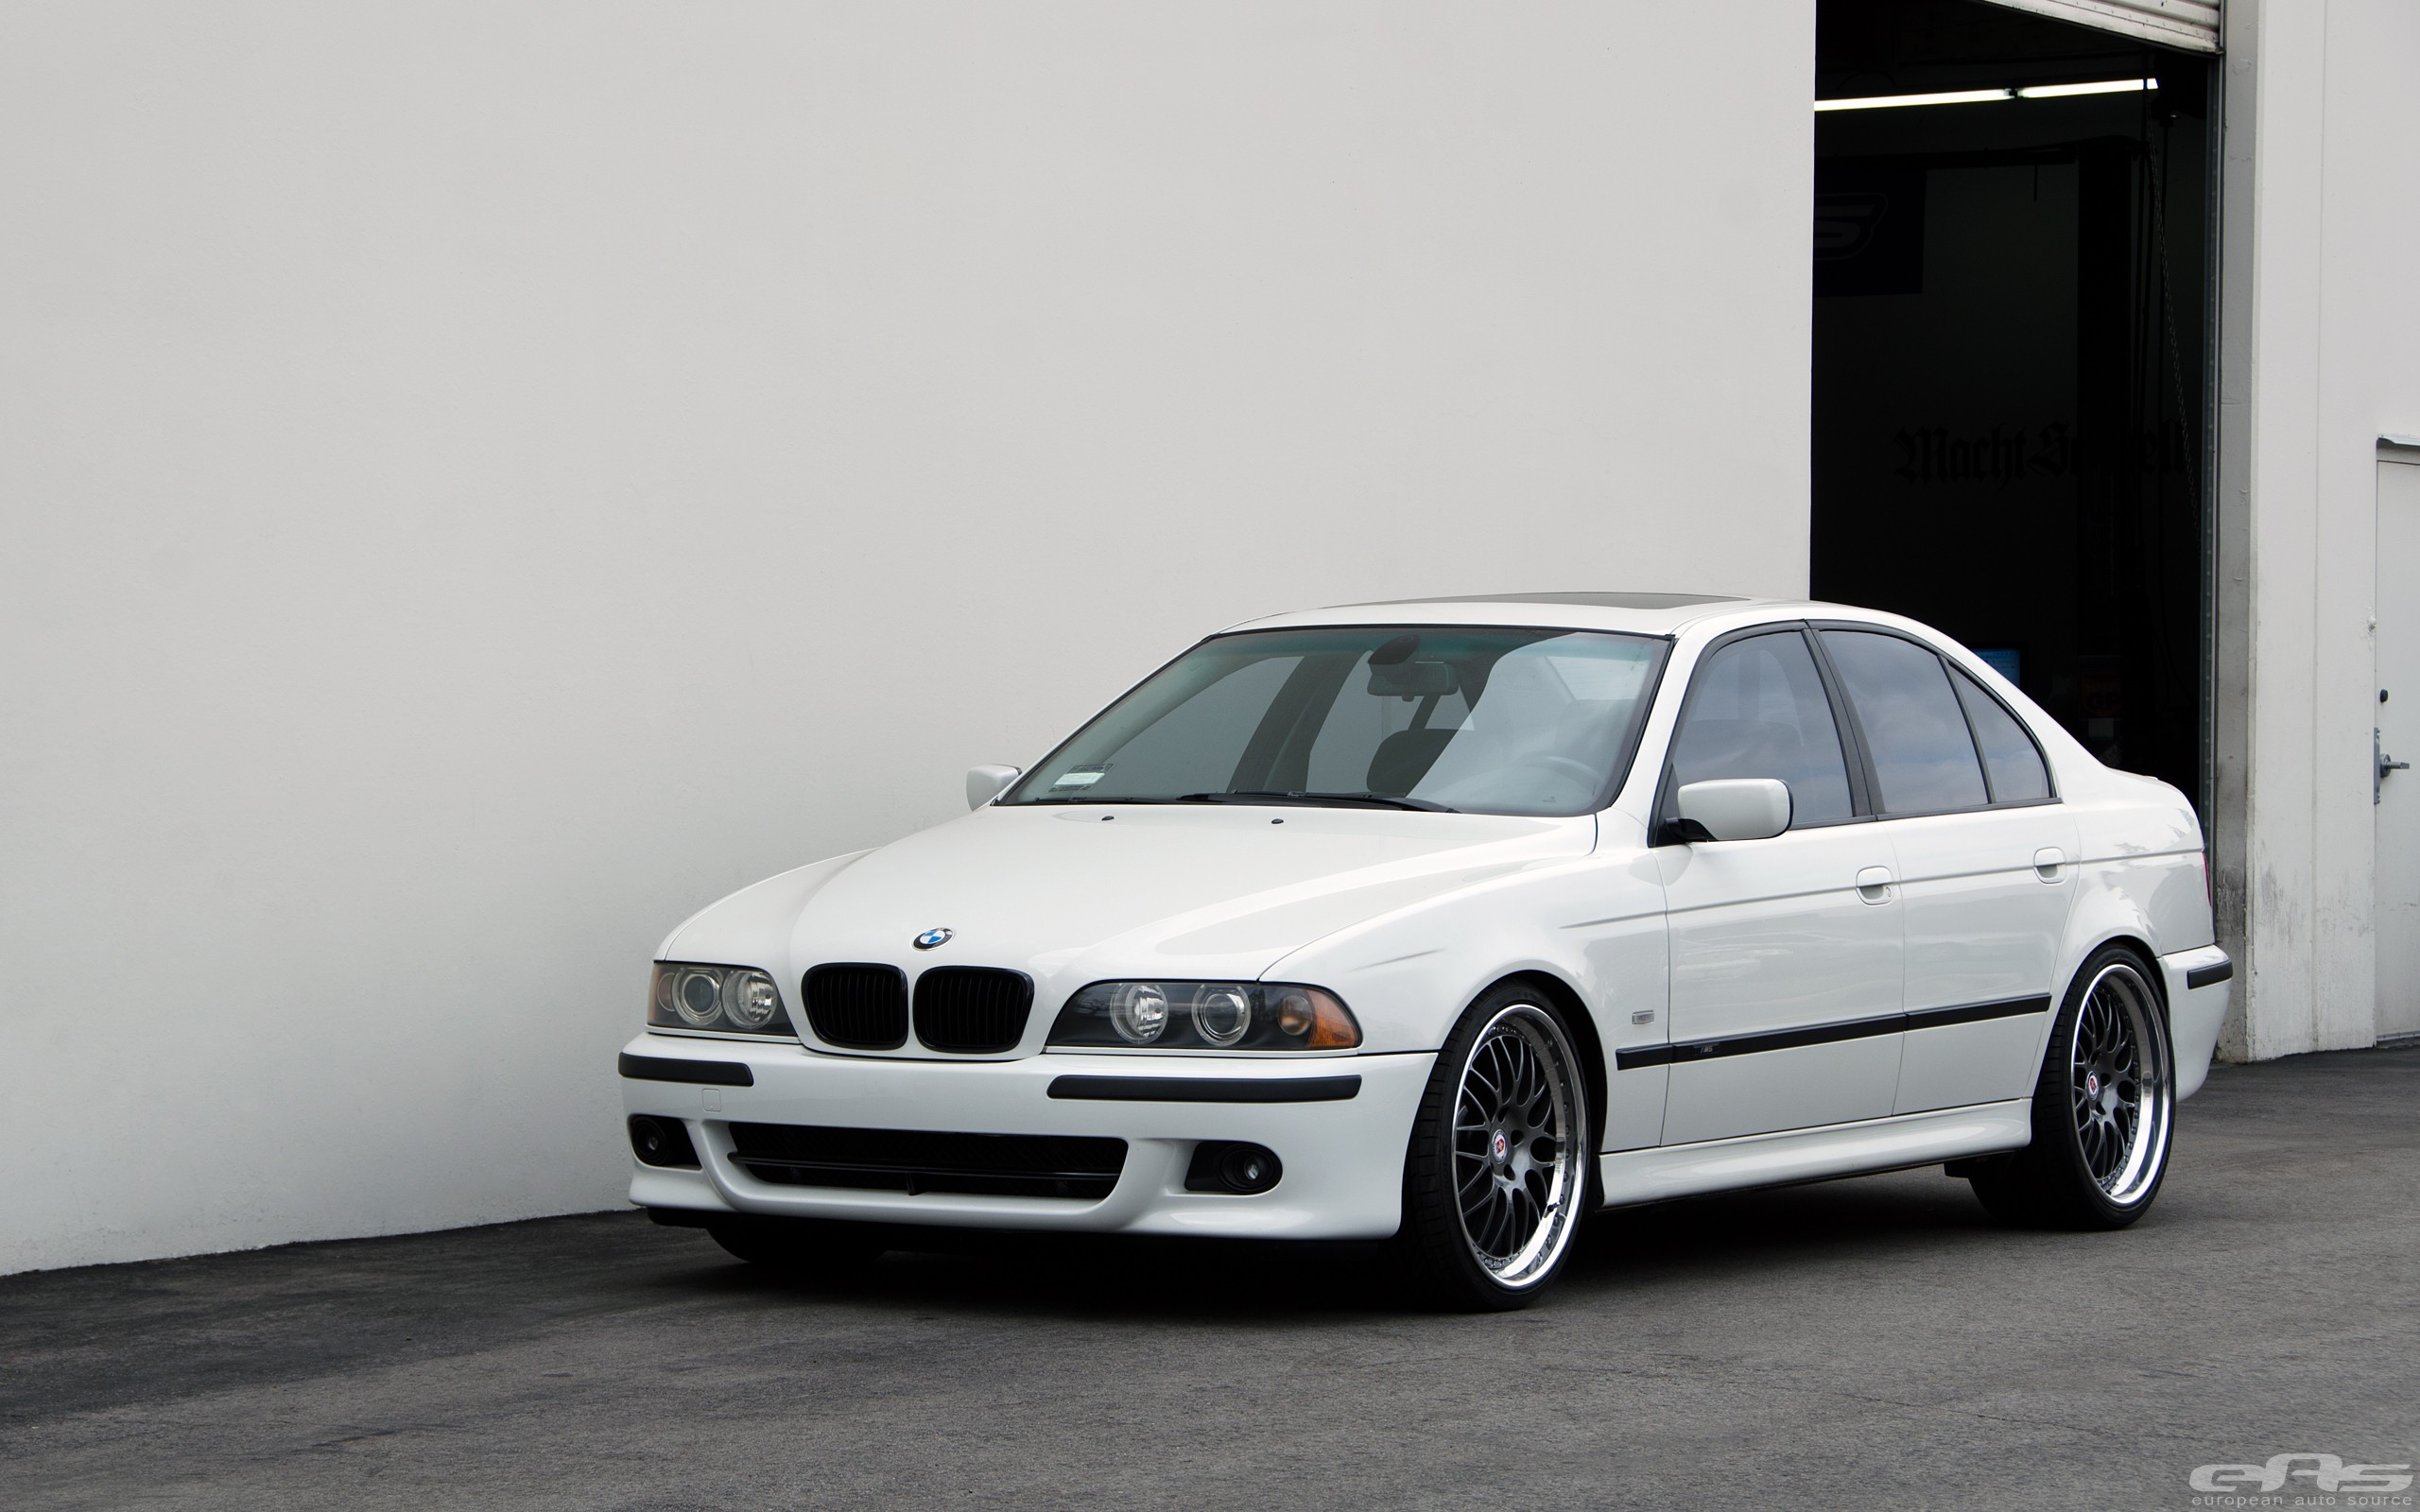 bmw e39 530i gets lower at eas still looks good. Black Bedroom Furniture Sets. Home Design Ideas